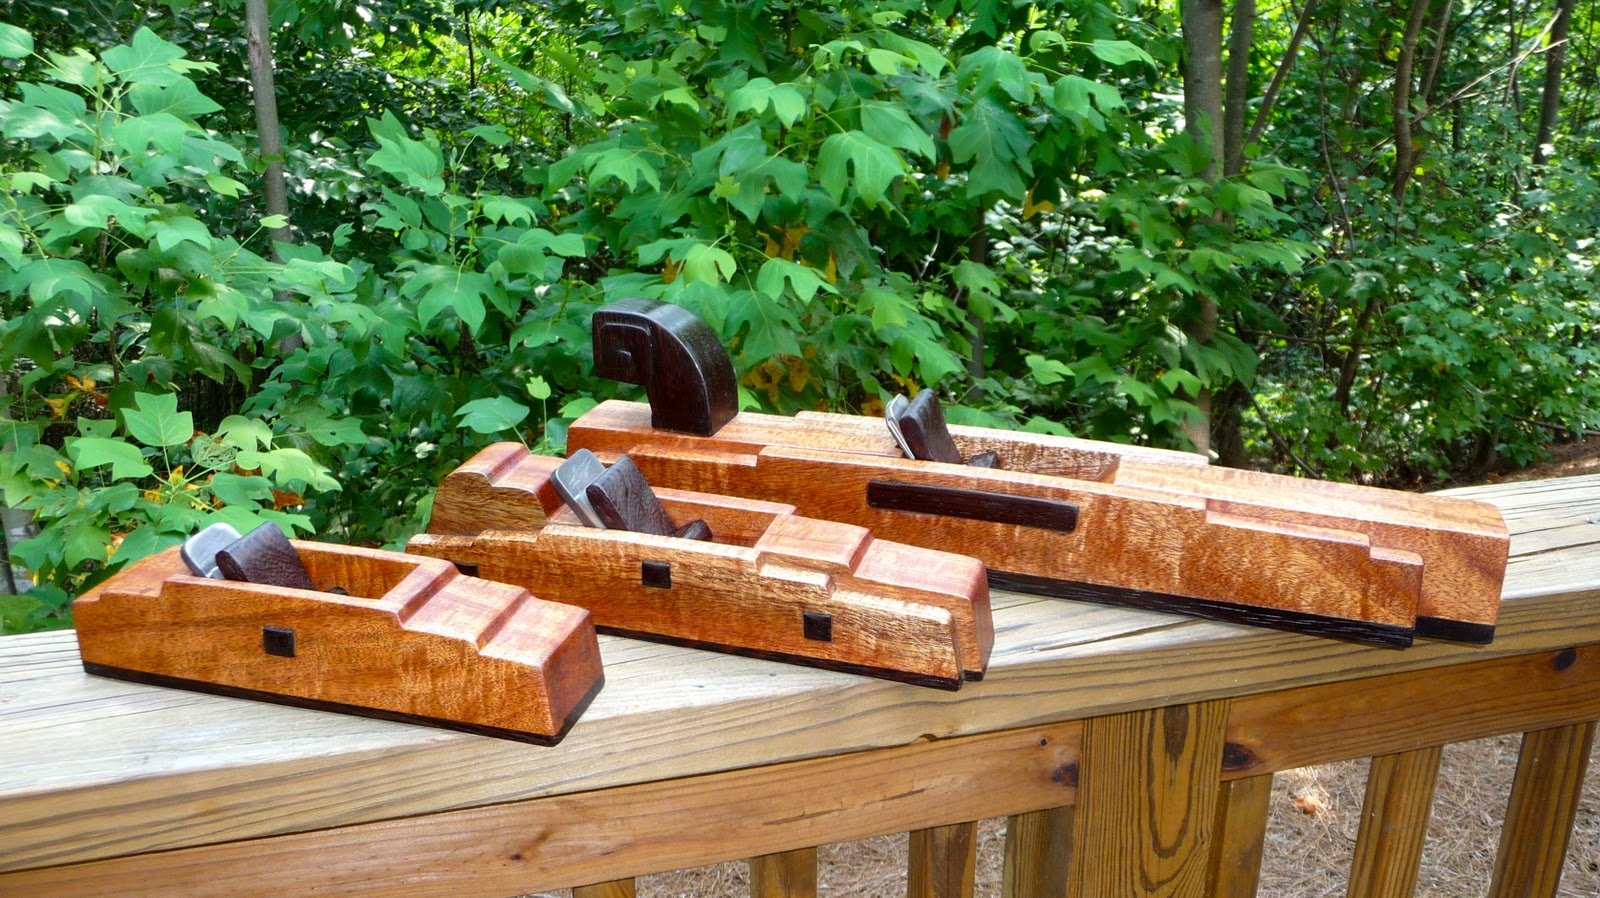 Woodworkers Guide: Hand Tools: Woodworking Hand Planes and ...